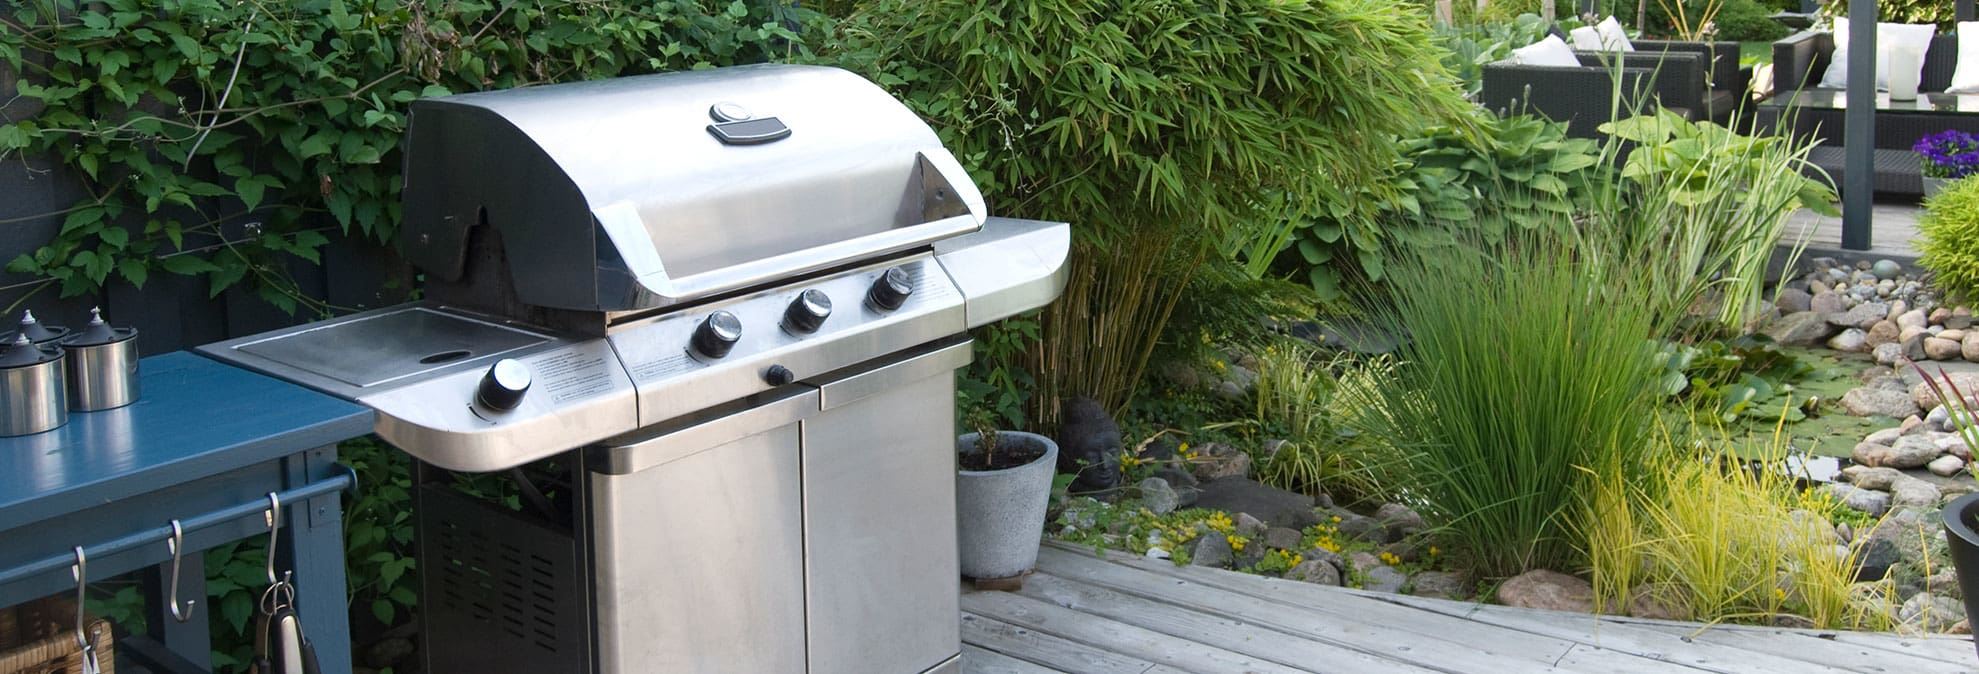 Grill, Stainless Steel - cover